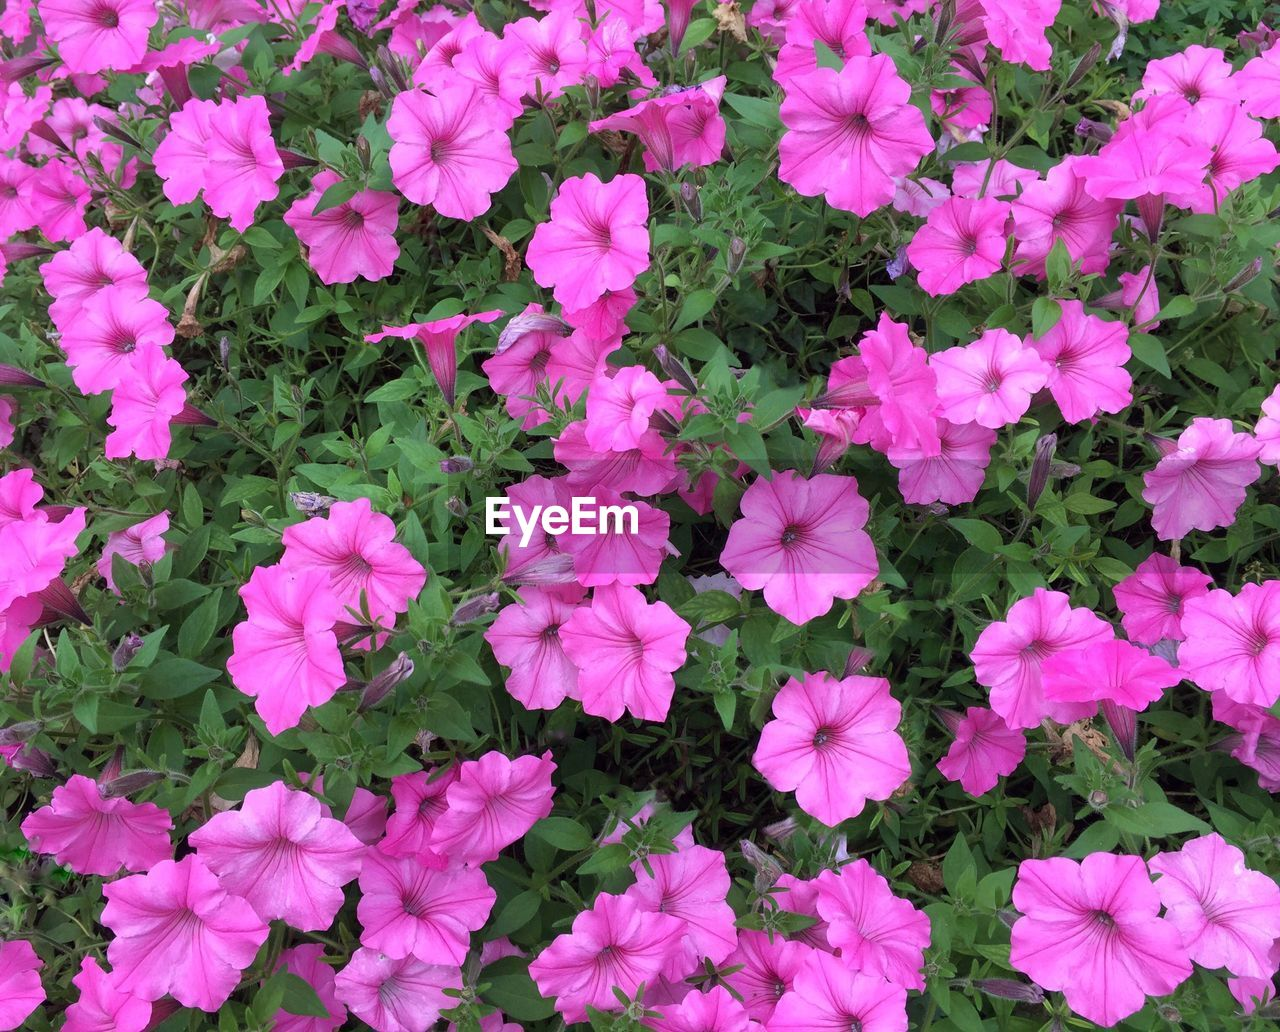 HIGH ANGLE VIEW OF PINK FLOWERS BLOOMING IN PLANT